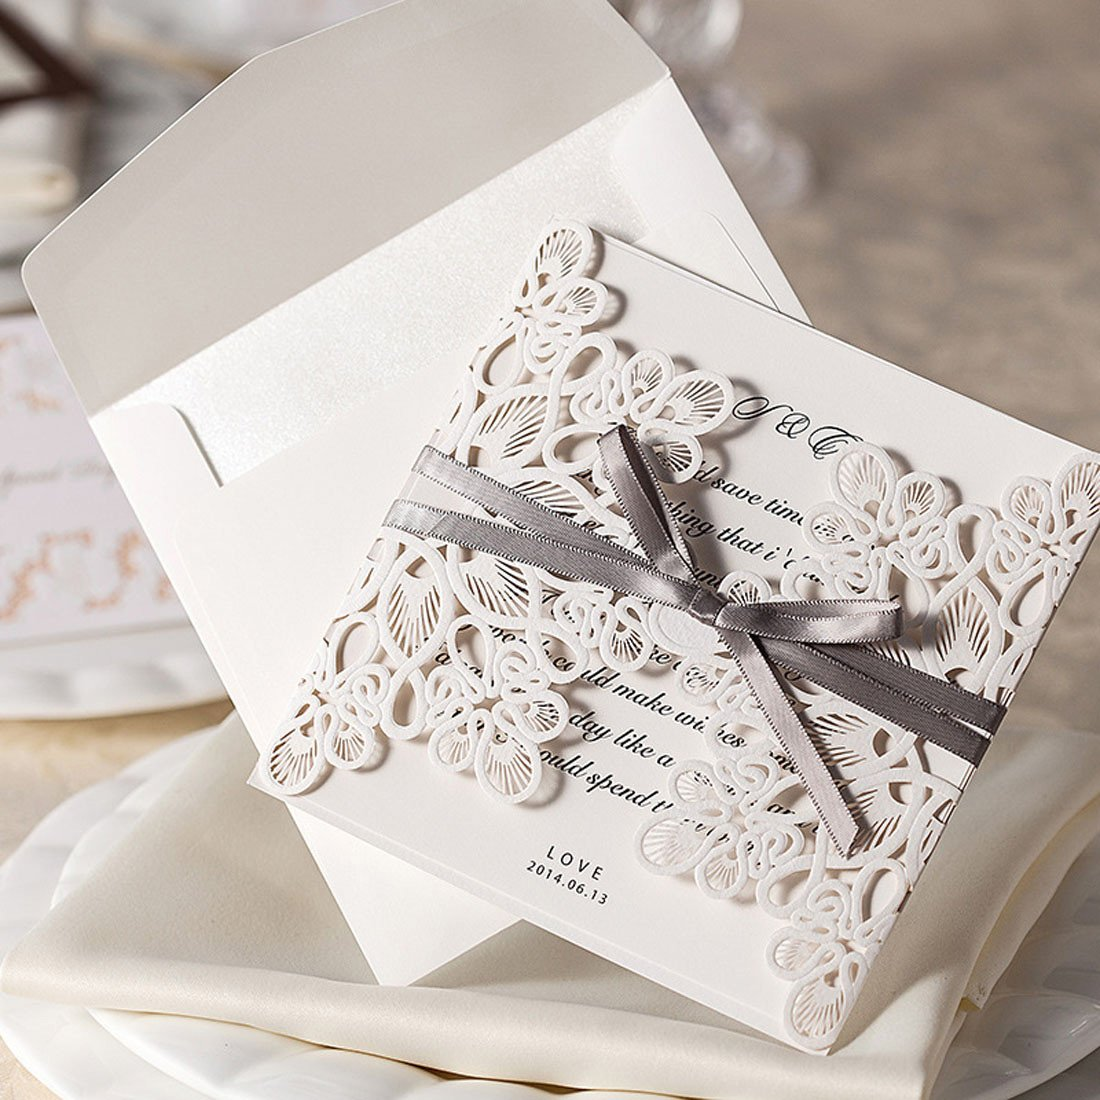 WISHMADE 50 Count Luxury Elegant Laser Cut Invitations Cards Kits White Printable for Wedding Birthday Baby Shower Bridal Shower with Ribbon and Envelopes 2